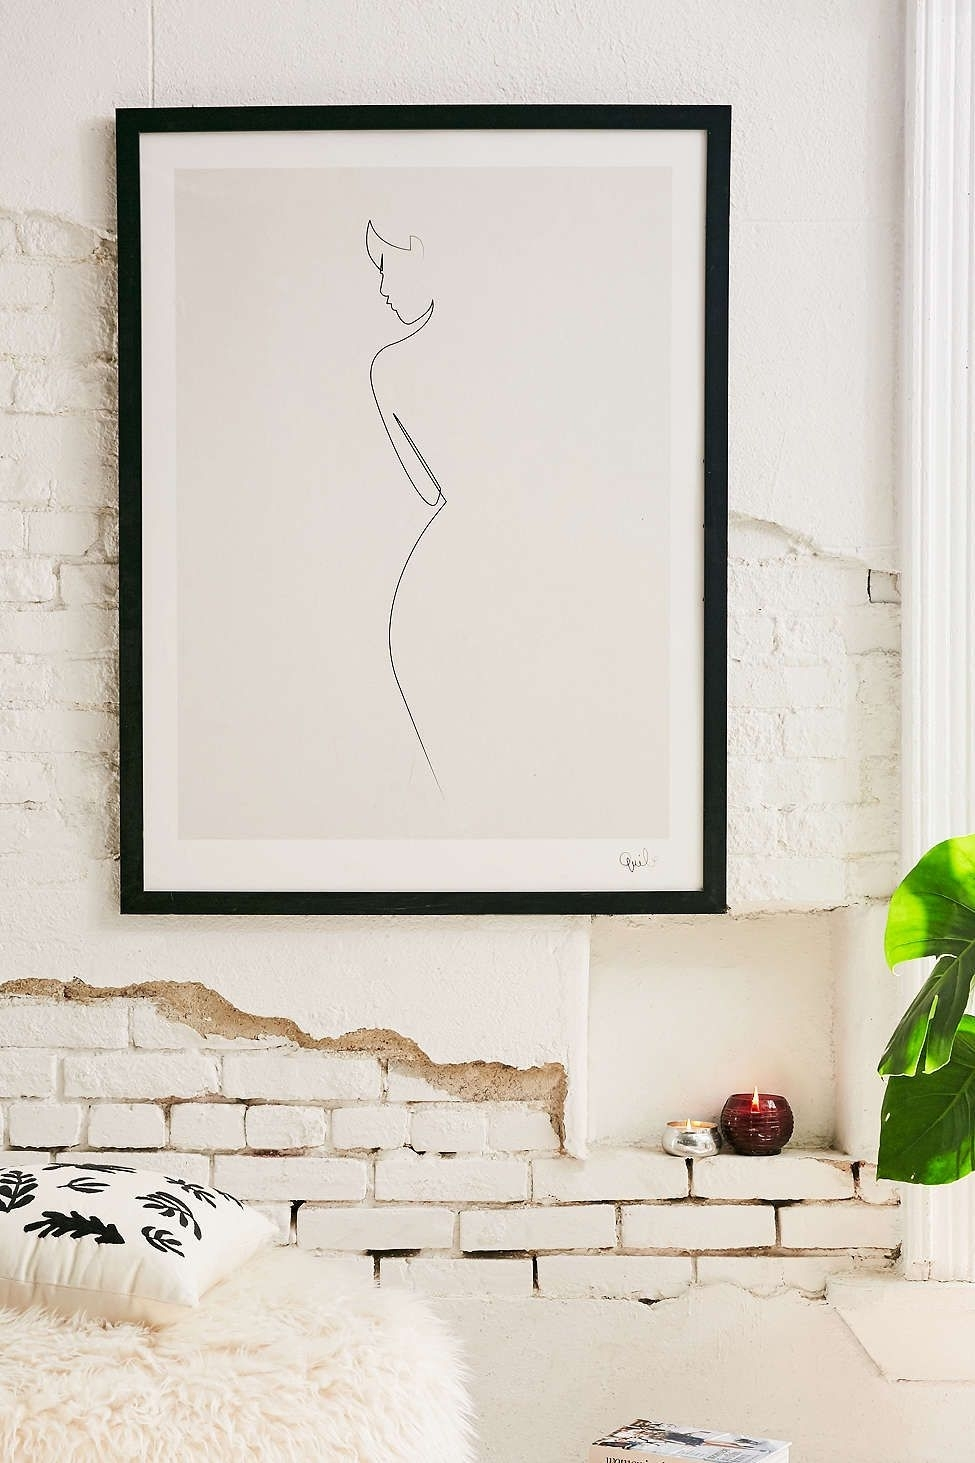 Quibe One Line Nude Art Print | Urban Outfitters, Nude And Urban Intended For 2017 Framed Art Prints For Bedroom (Gallery 10 of 15)